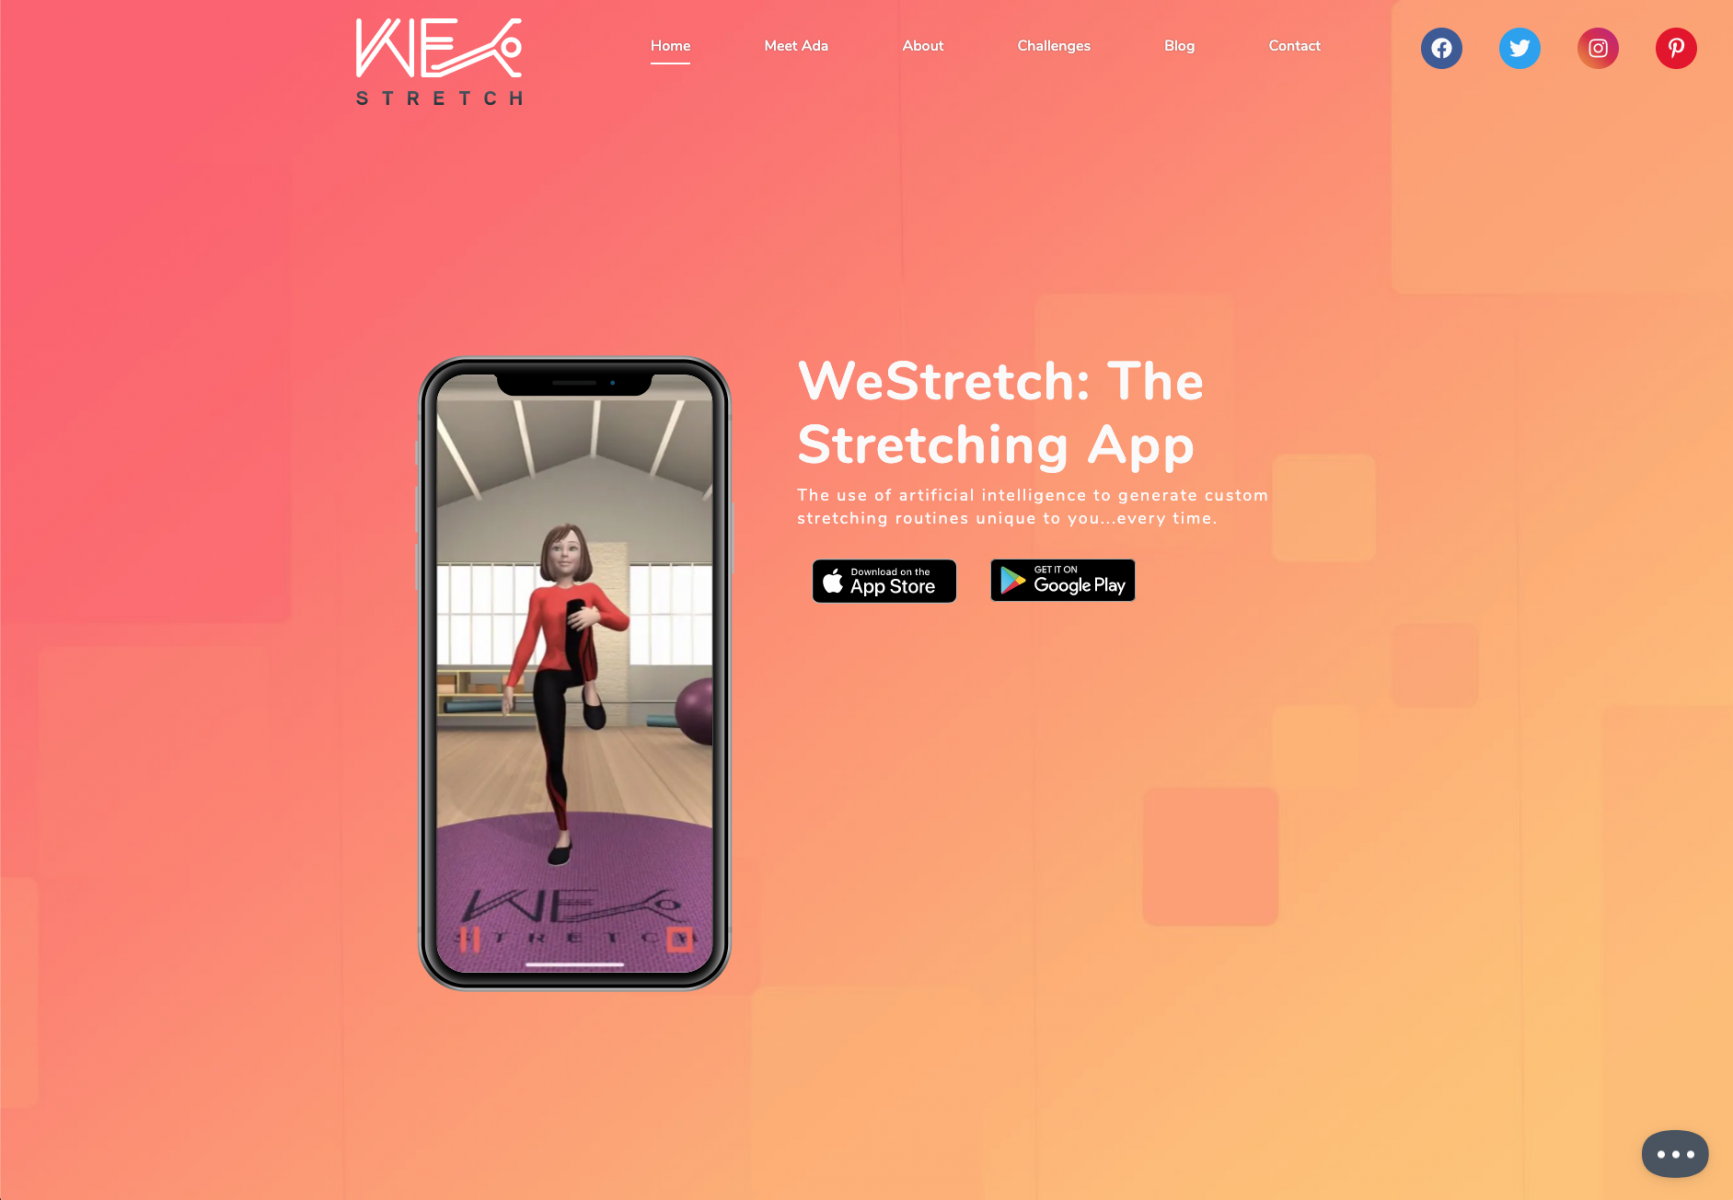 WeStretch: The Stretching App